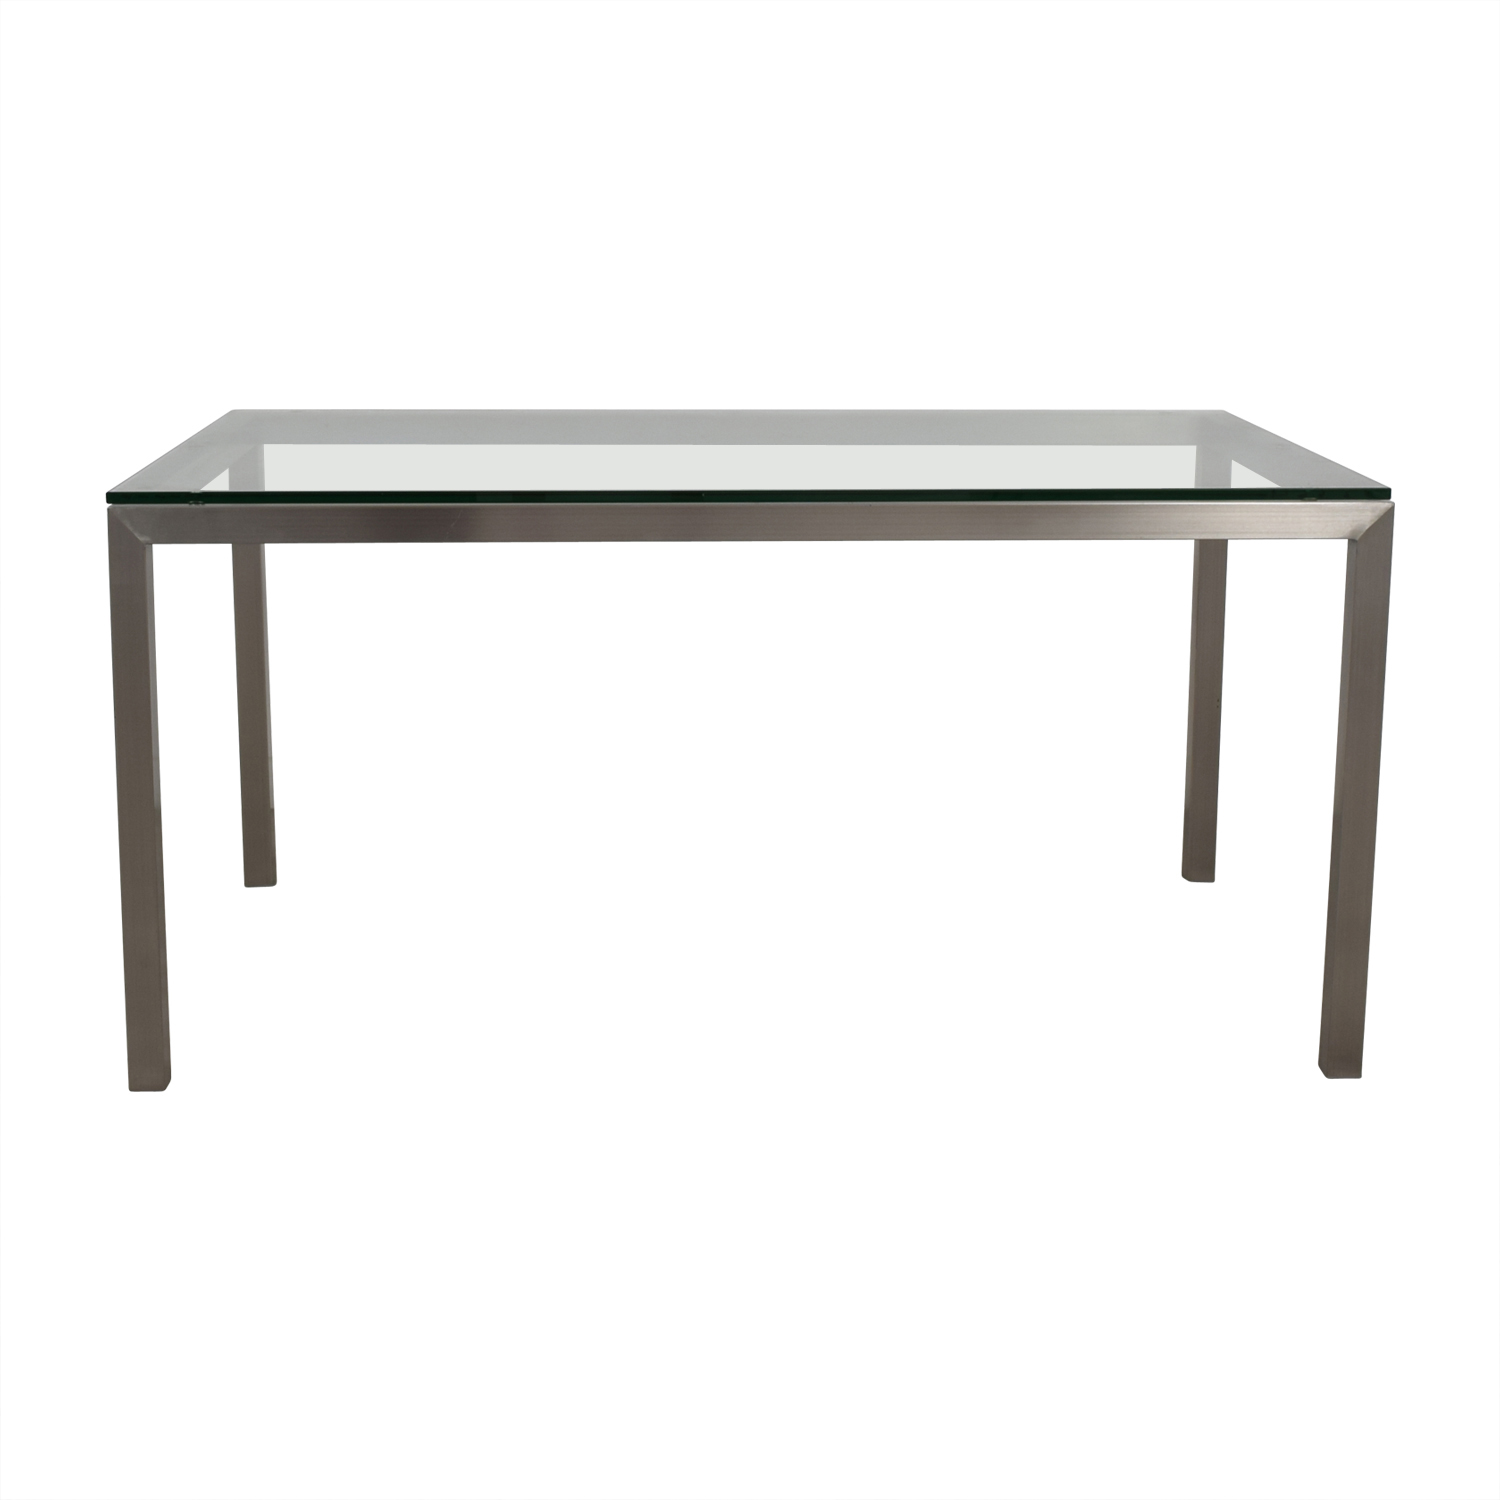 shop Crate & Barrel Crate & Barrel Parsons Stainless Steel Table online